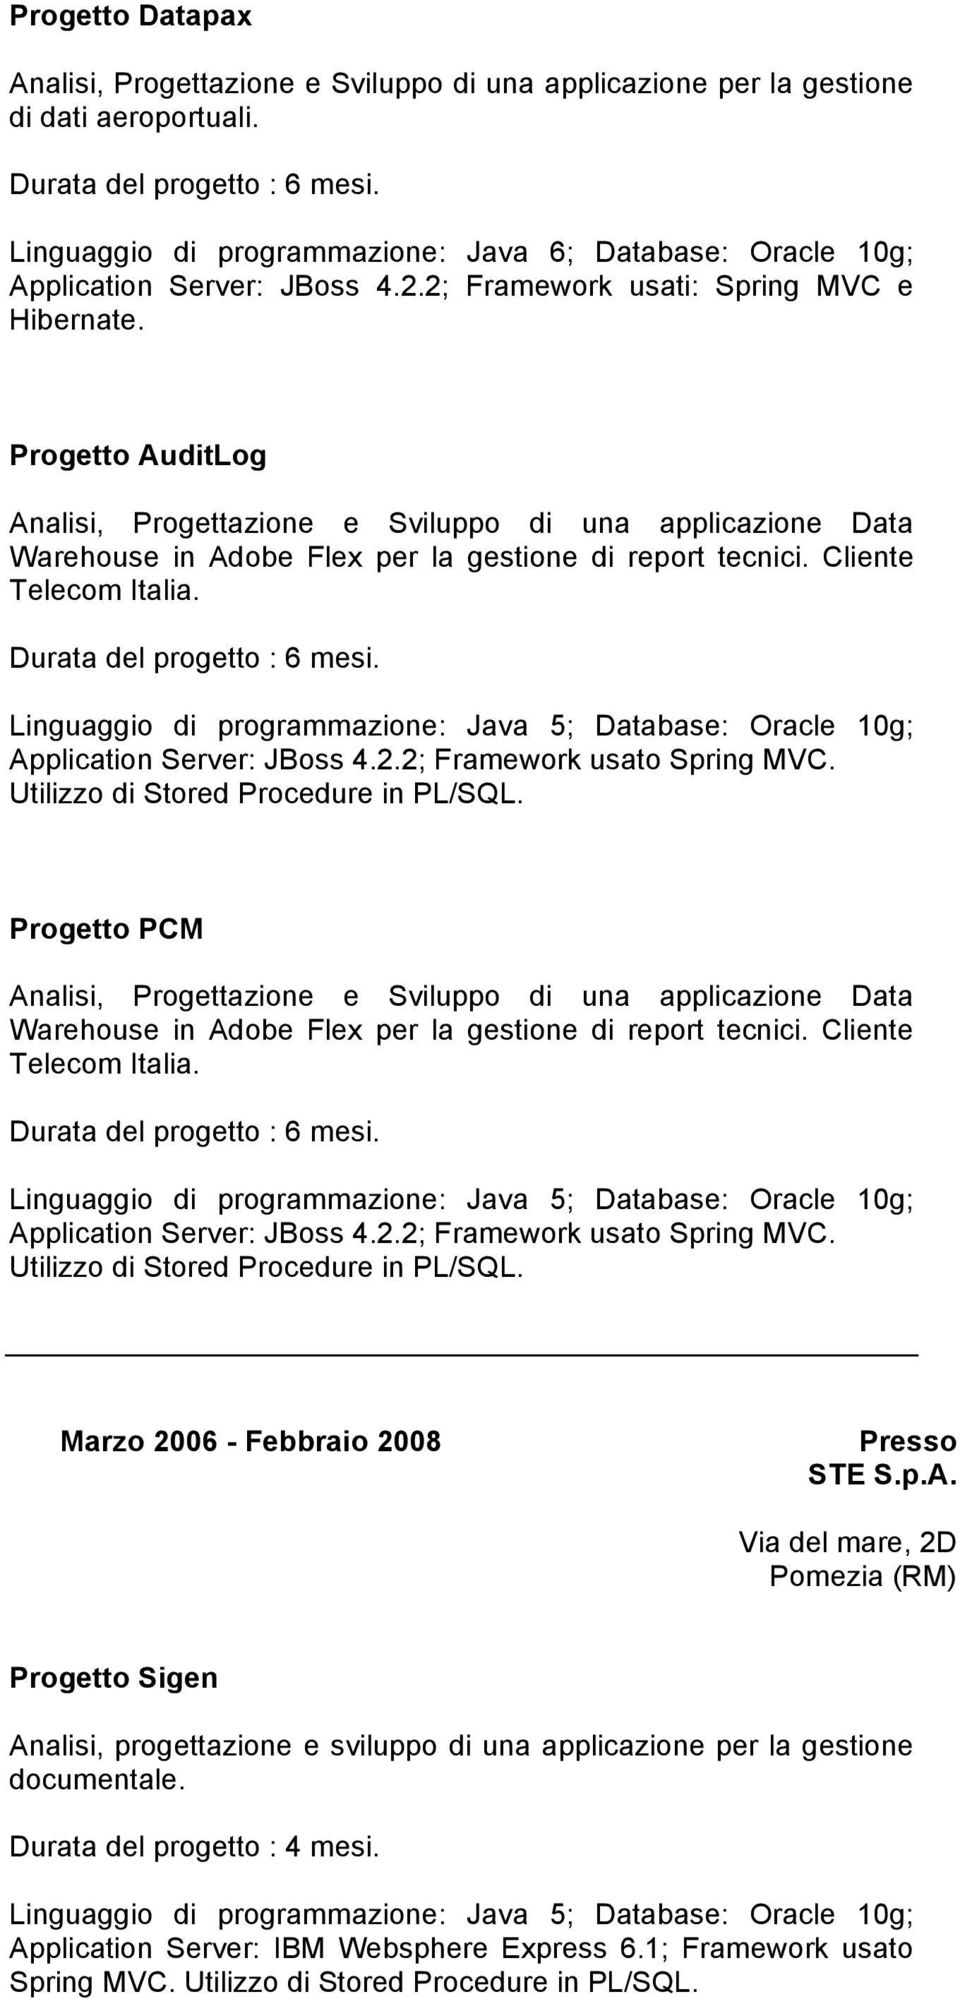 Cliente Telecom Italia. Application Server: JBoss 4.2.2; Framework usato Spring MVC. Utilizzo di Stored Procedure in PL/SQL.